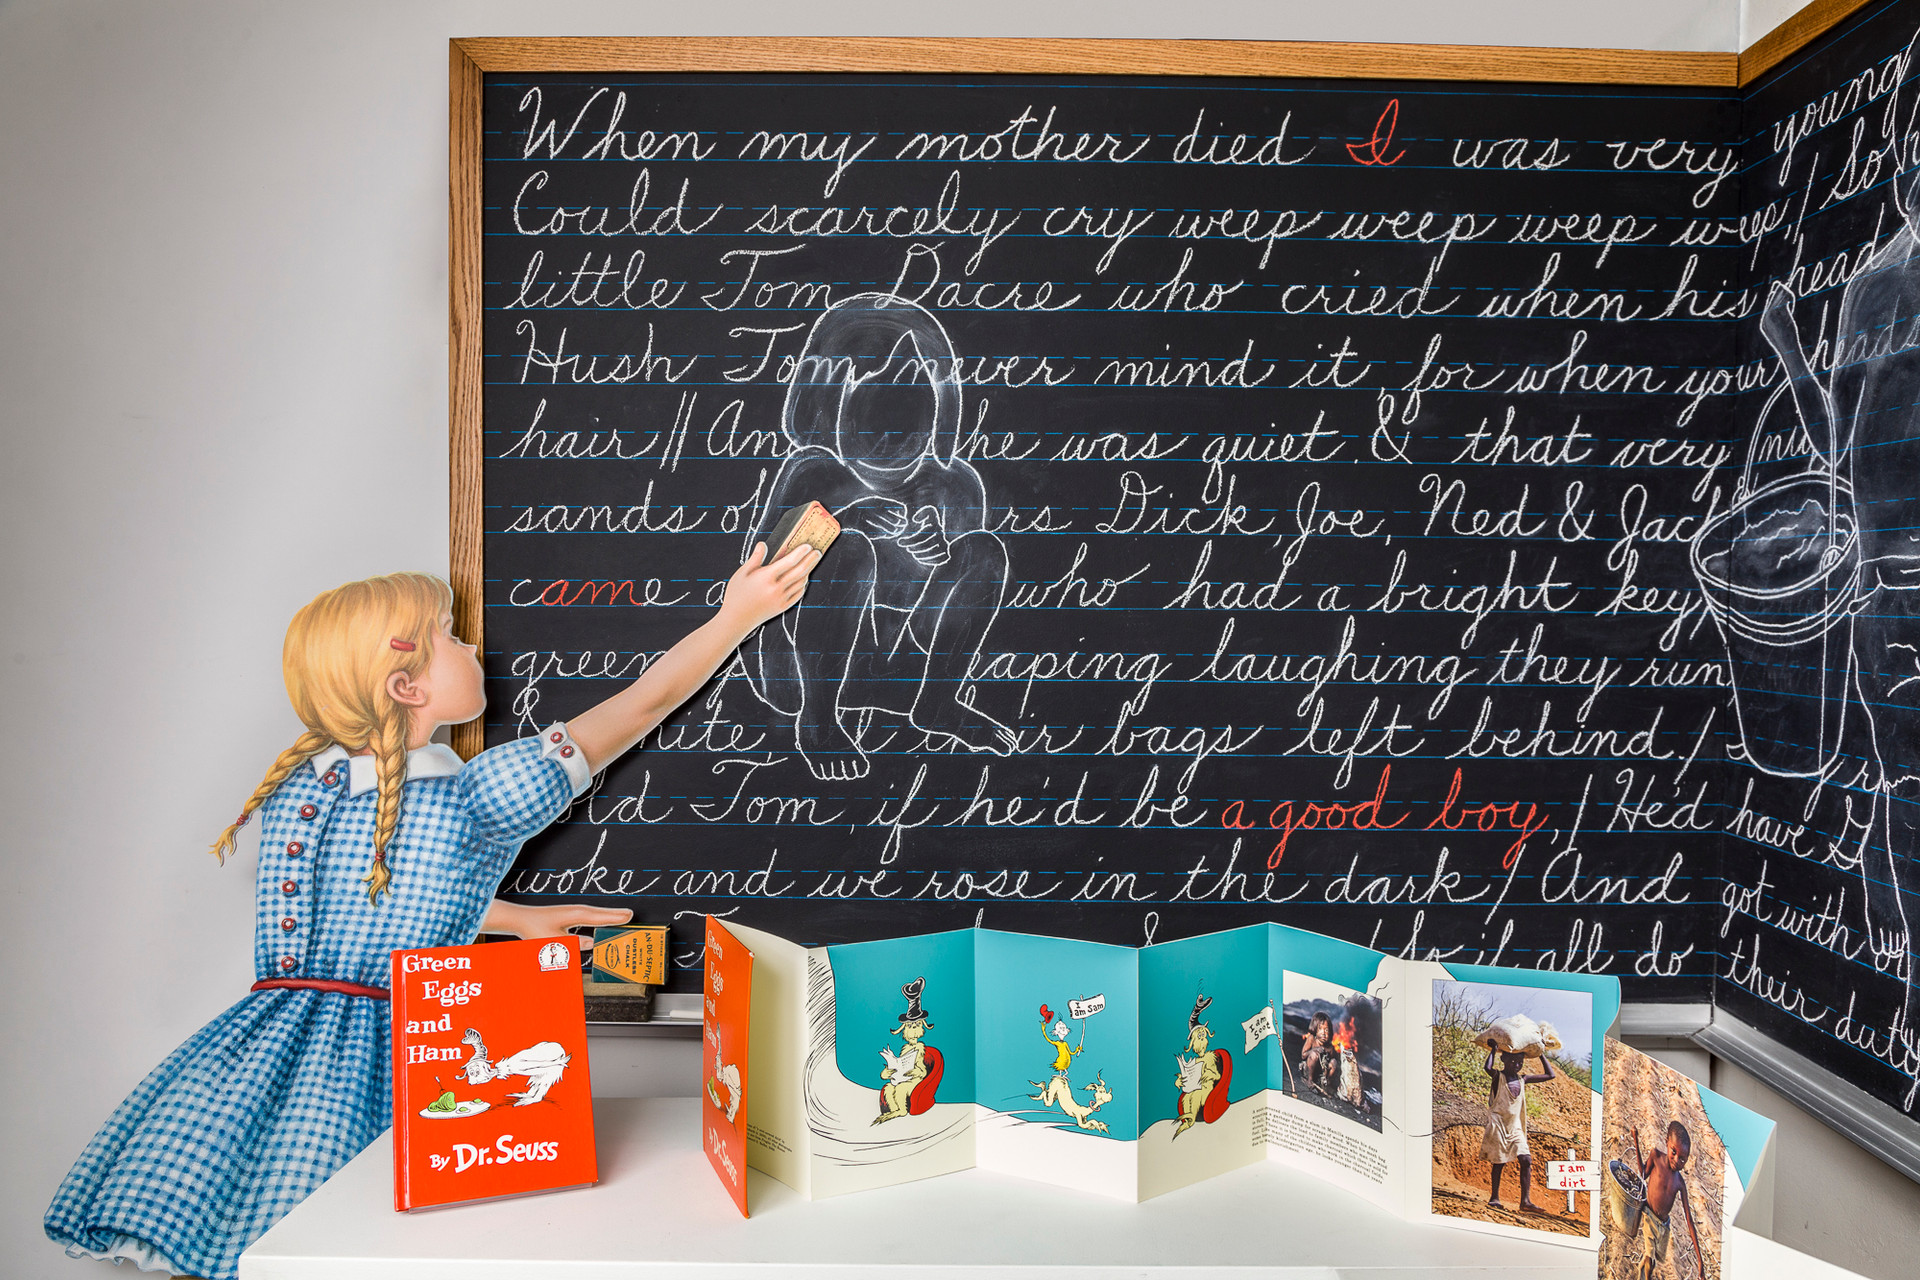 """1950s girl with eraser standing on pile of Dr. Seuss books in process of collapsing. Written on blackboard is """"The Chimney Sweeper"""" by William Blake, 1789. This poem from Blake's Songs of Innocence and Experience focuses on an egregious example of child labor in 18th century London. Three life-size silhouettes drawn over the text are enlarged from photographic images in book below."""